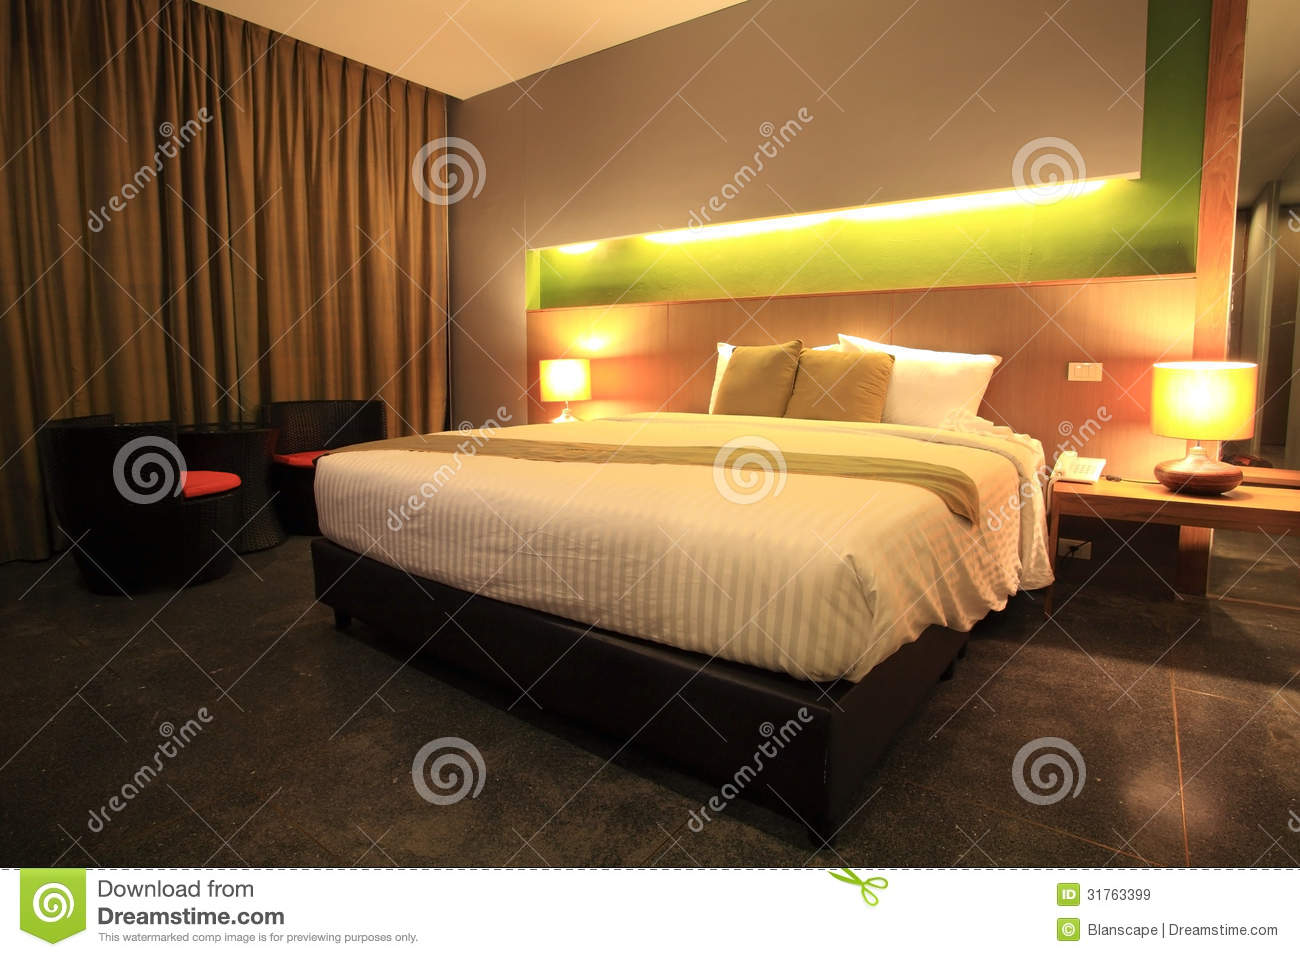 Luxury modern master bedroom royalty free stock images for Bedroom interior images